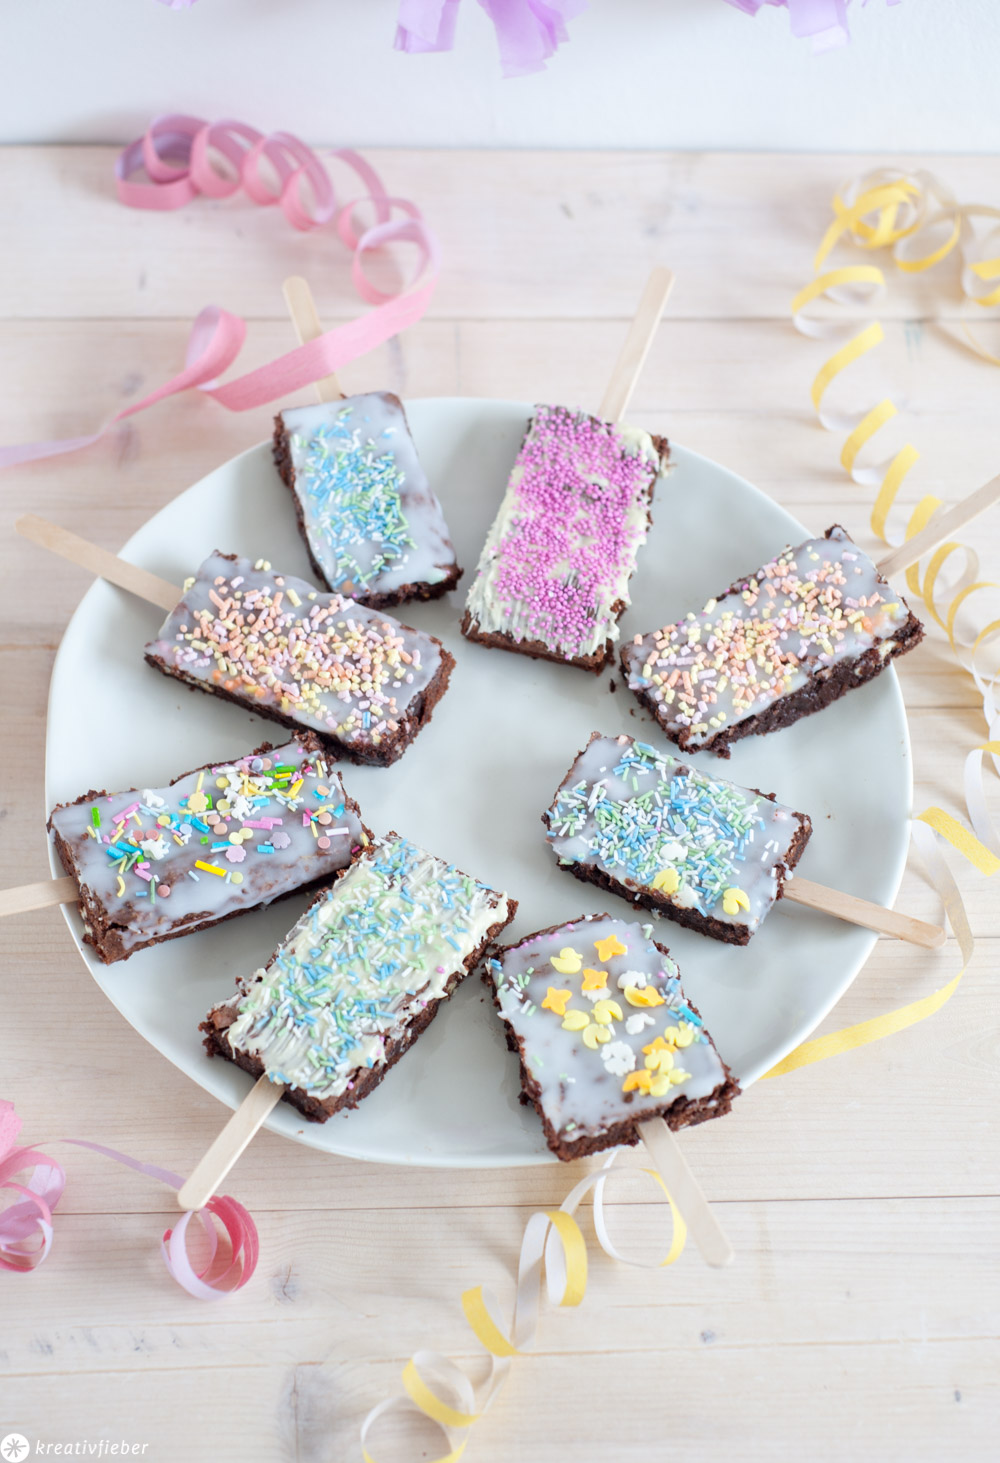 Party Brownies Rezept